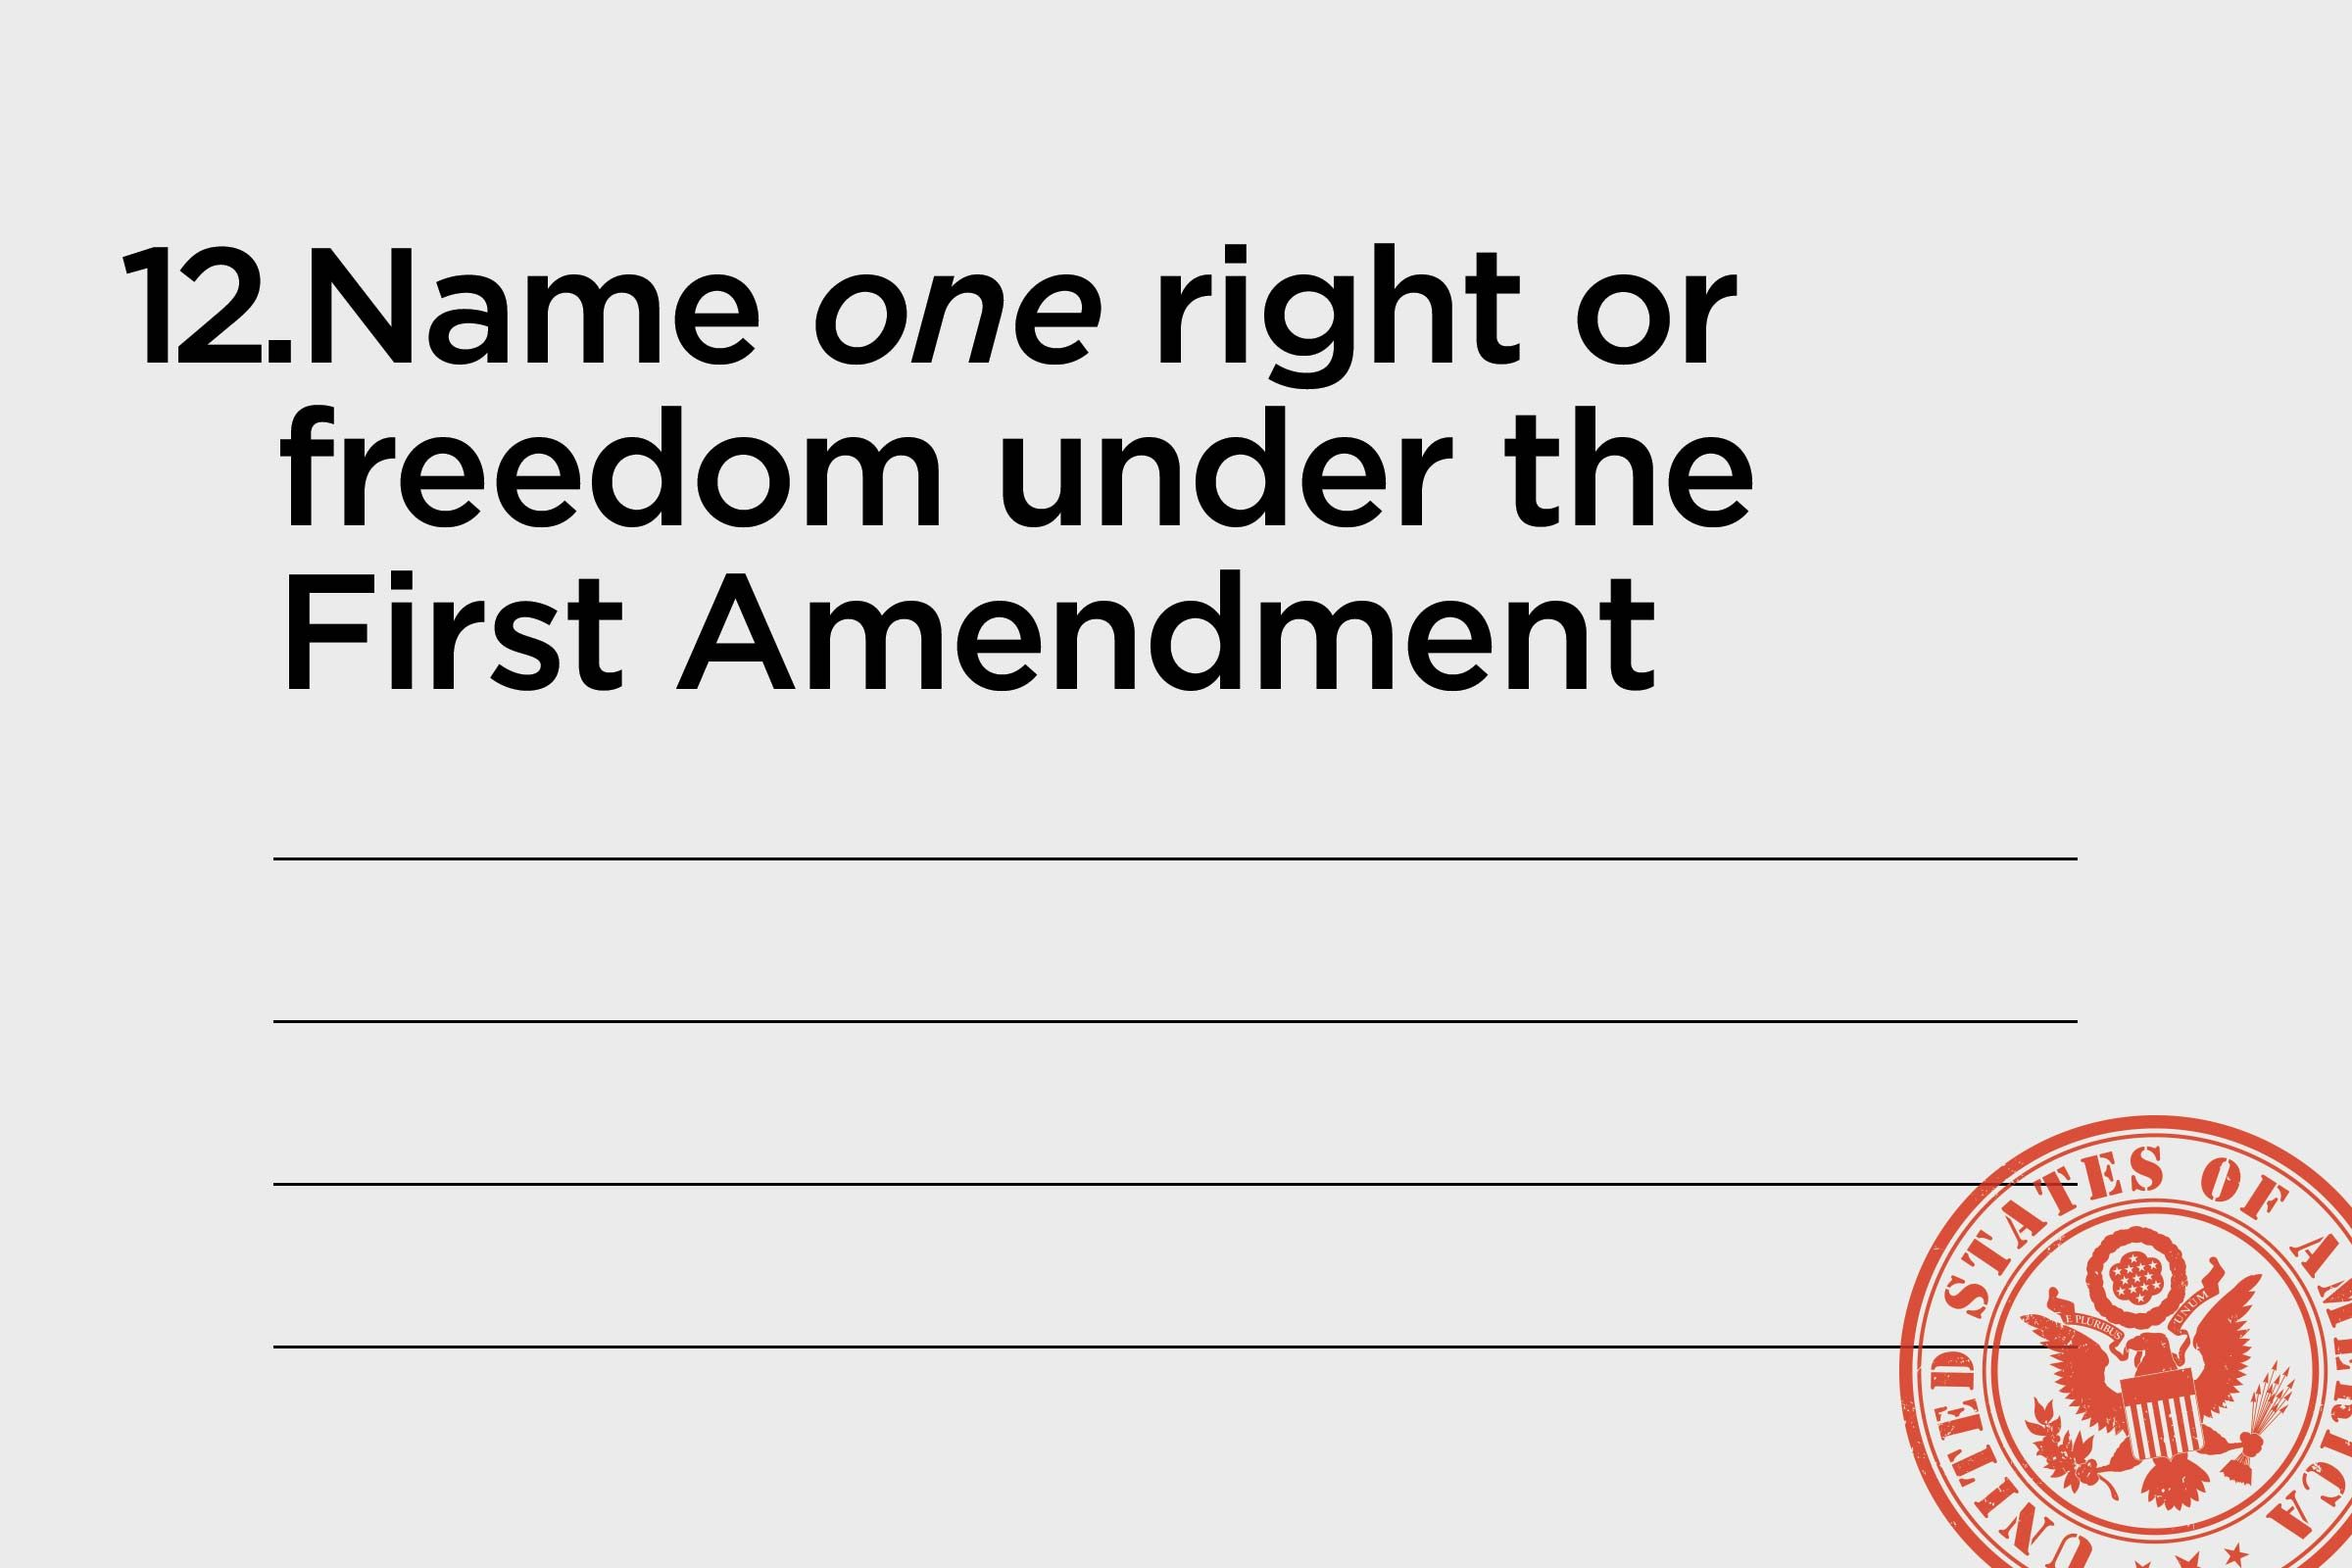 name one right or freedom under the first amendment